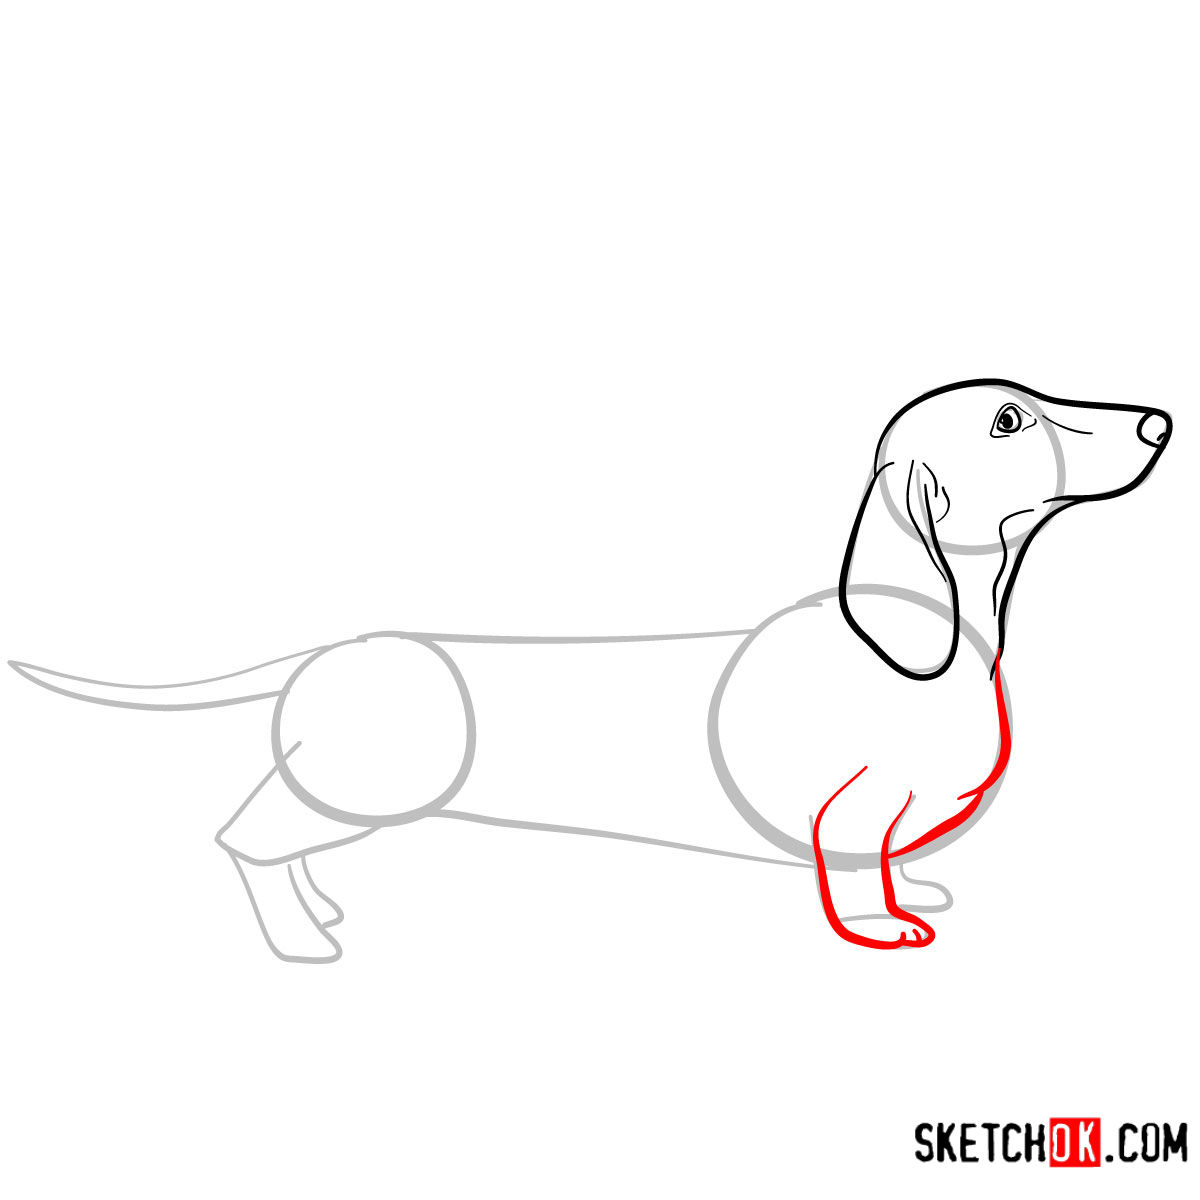 How to draw the Dachshund dog - step 05